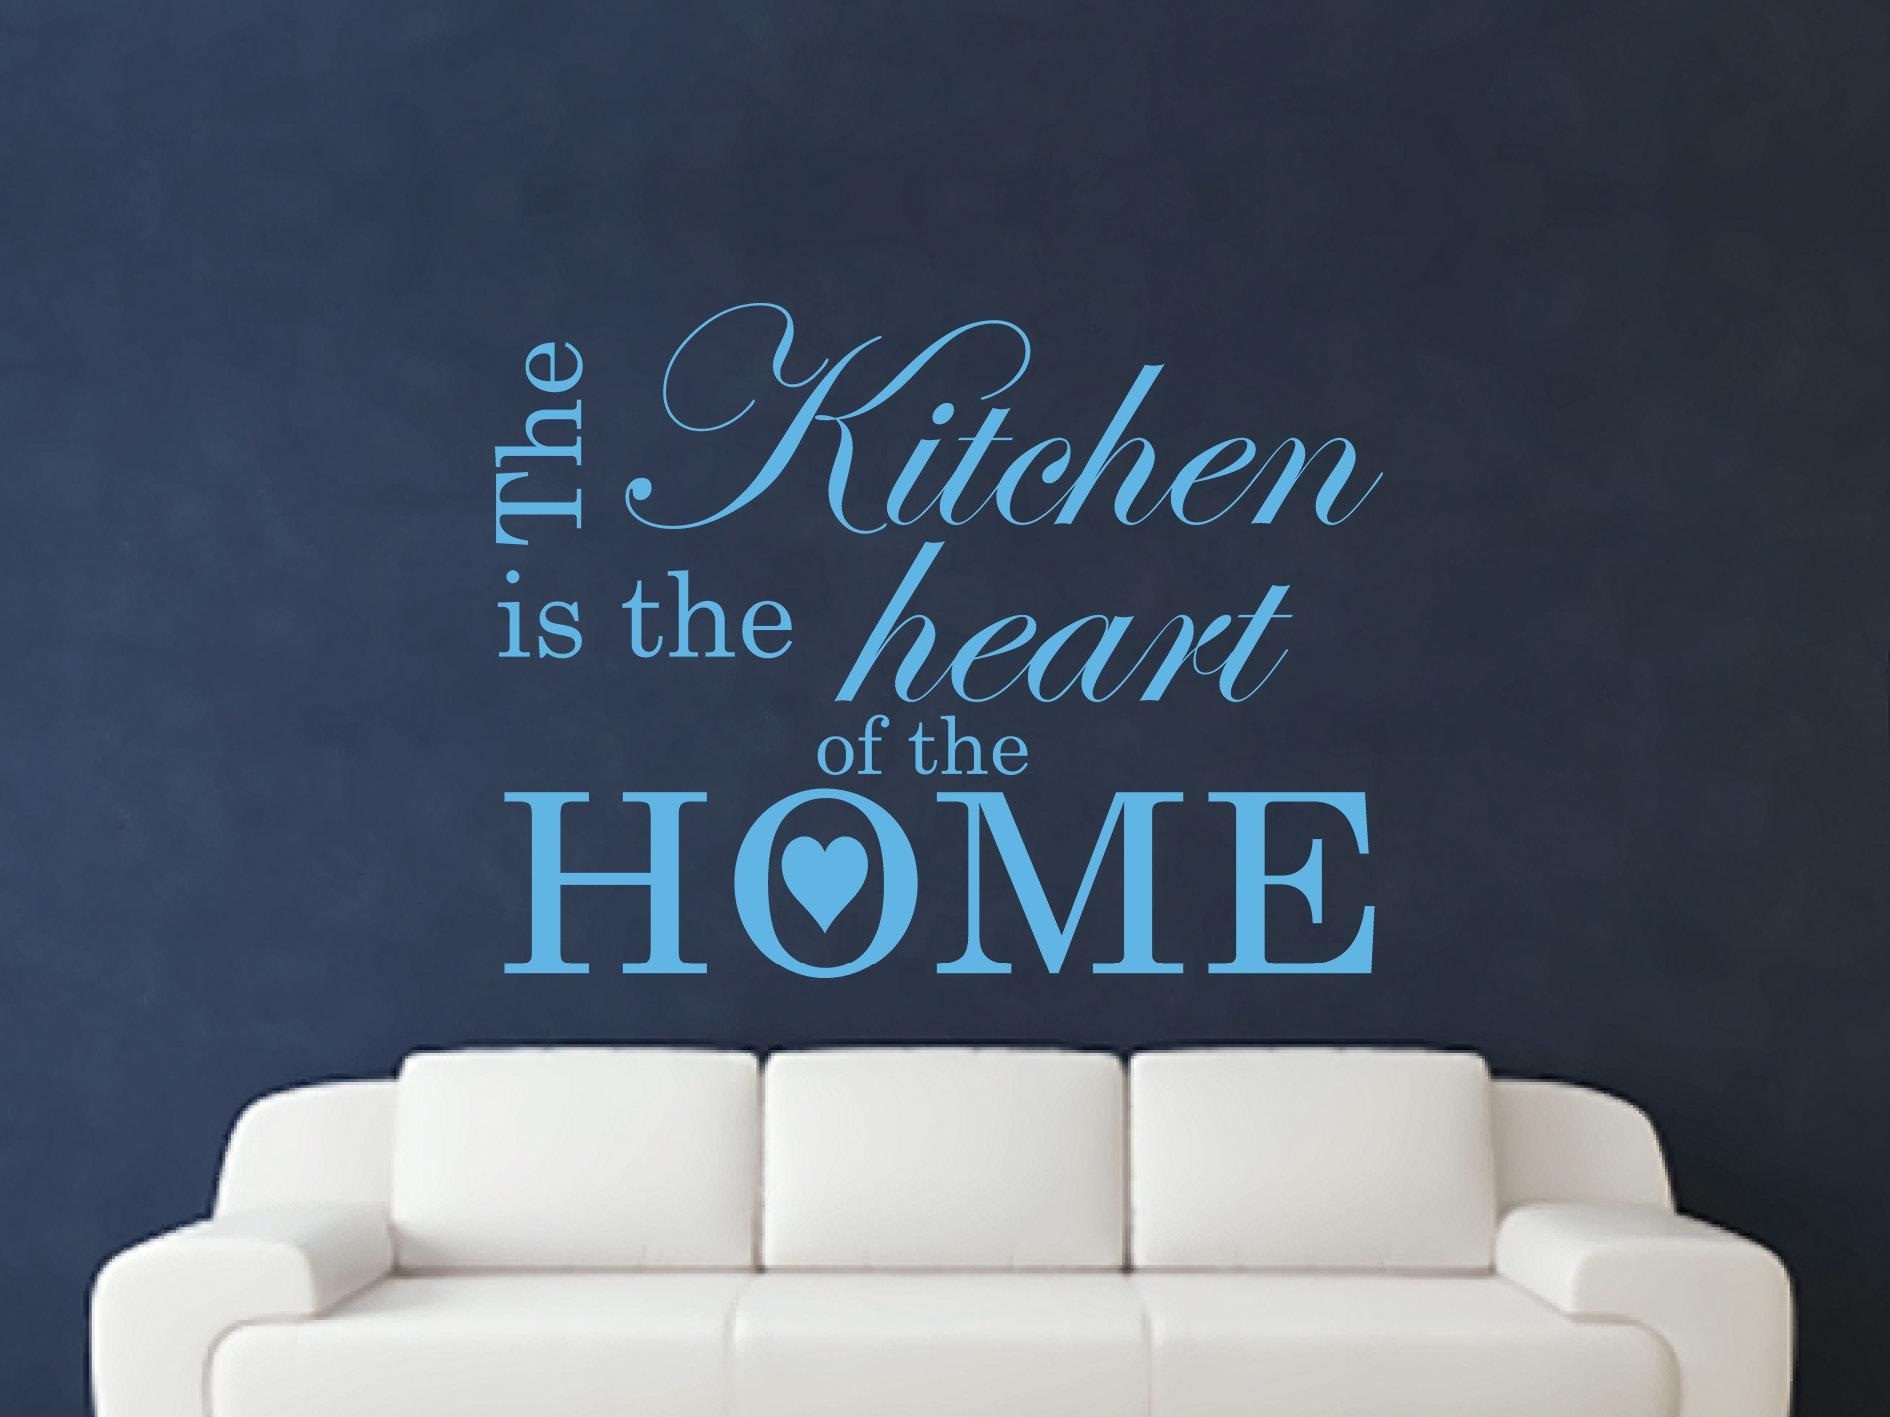 The Kitchen Is The Heart Of The Home Wall Art Sticker Text 3 Sizes Regarding Wall Art Teal Colour (Image 14 of 20)